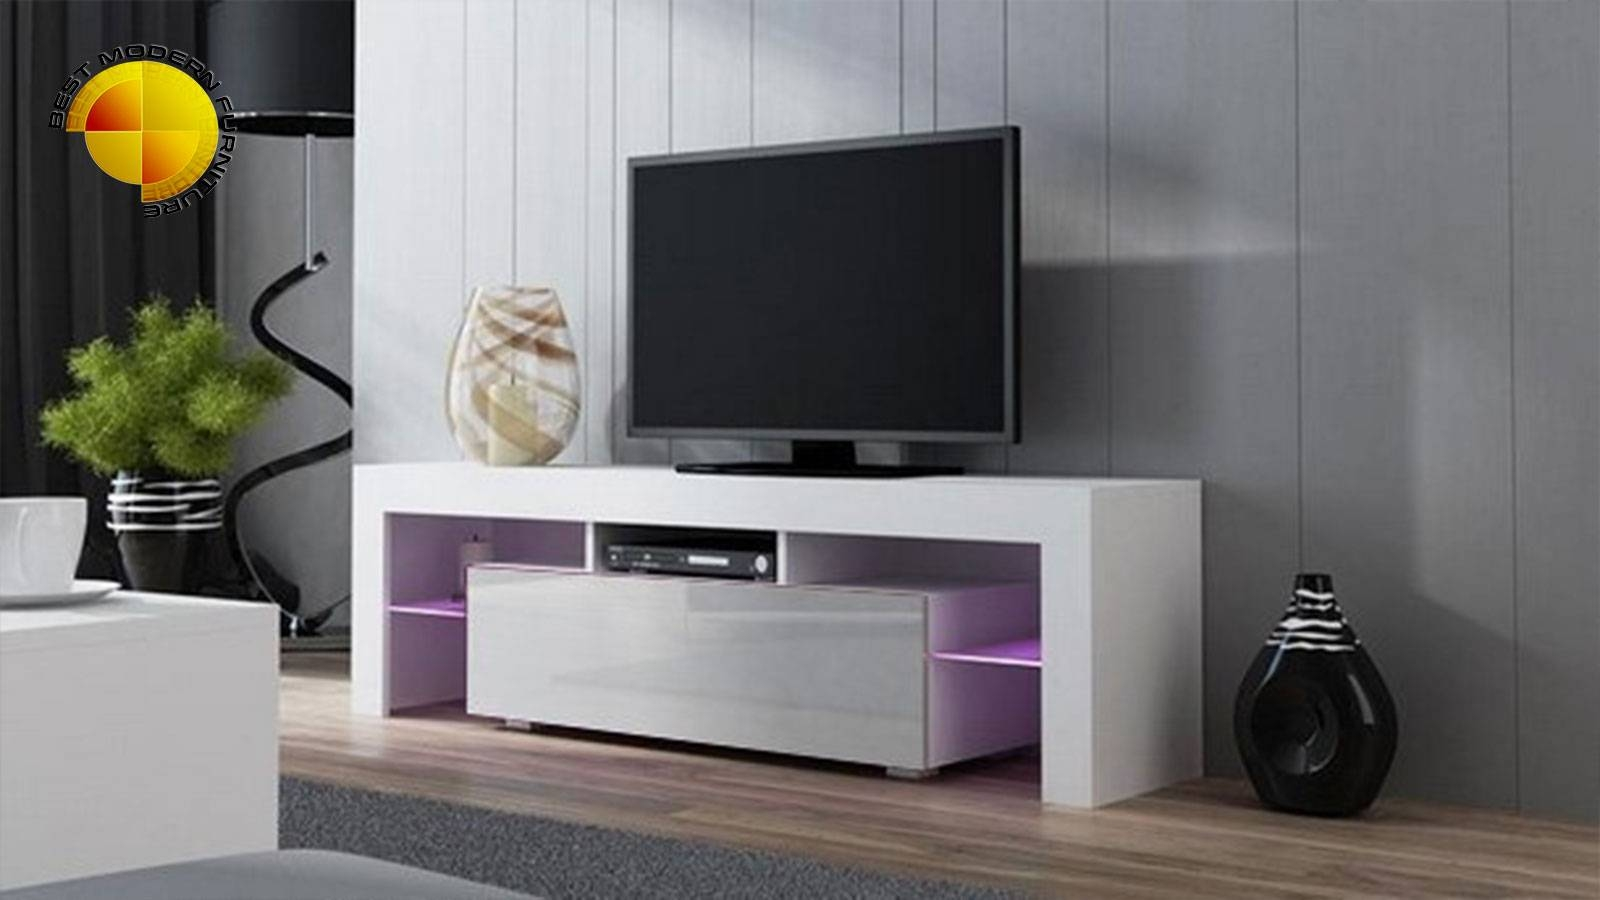 Modern Tv Stand 160cm High Gloss Cabinet Rgb Led Lights White Unit Pertaining To White Modern Tv Stands (View 10 of 15)